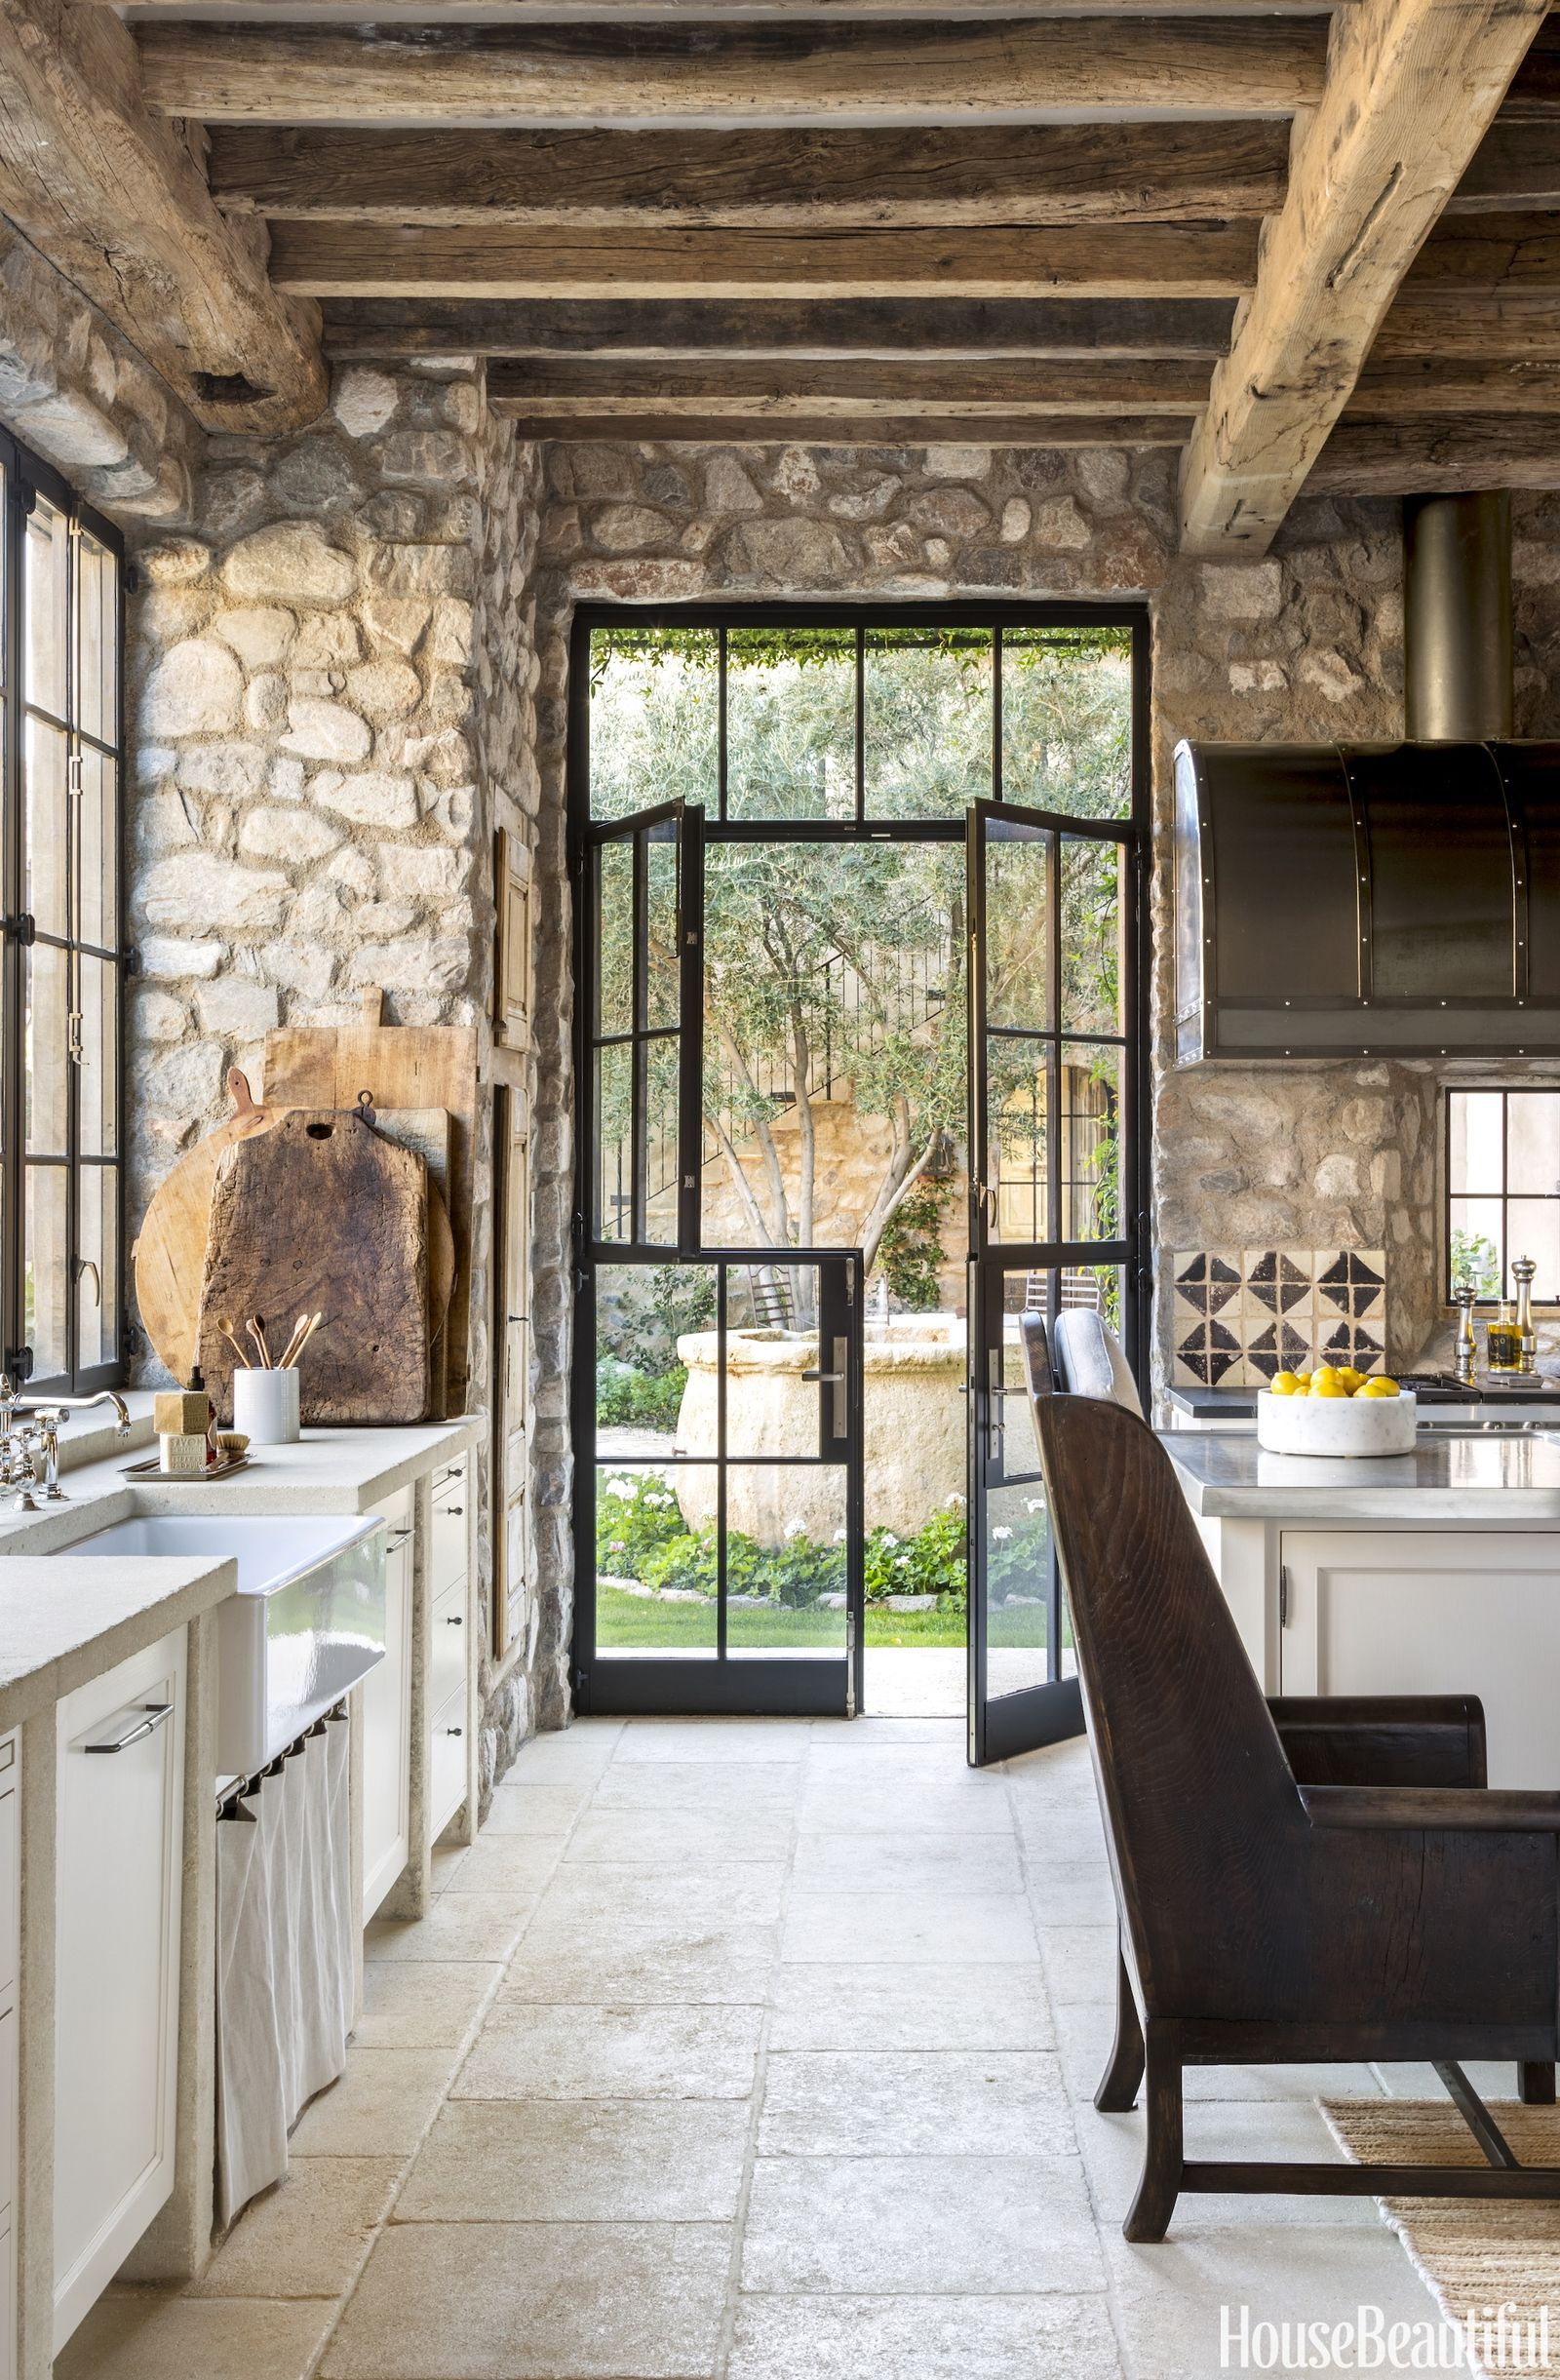 This Rustic Arizona Kitchen Feels Like A French Countryside Vacation Country Cottage Kitchen Rustic Country Kitchens Rustic Kitchen Design